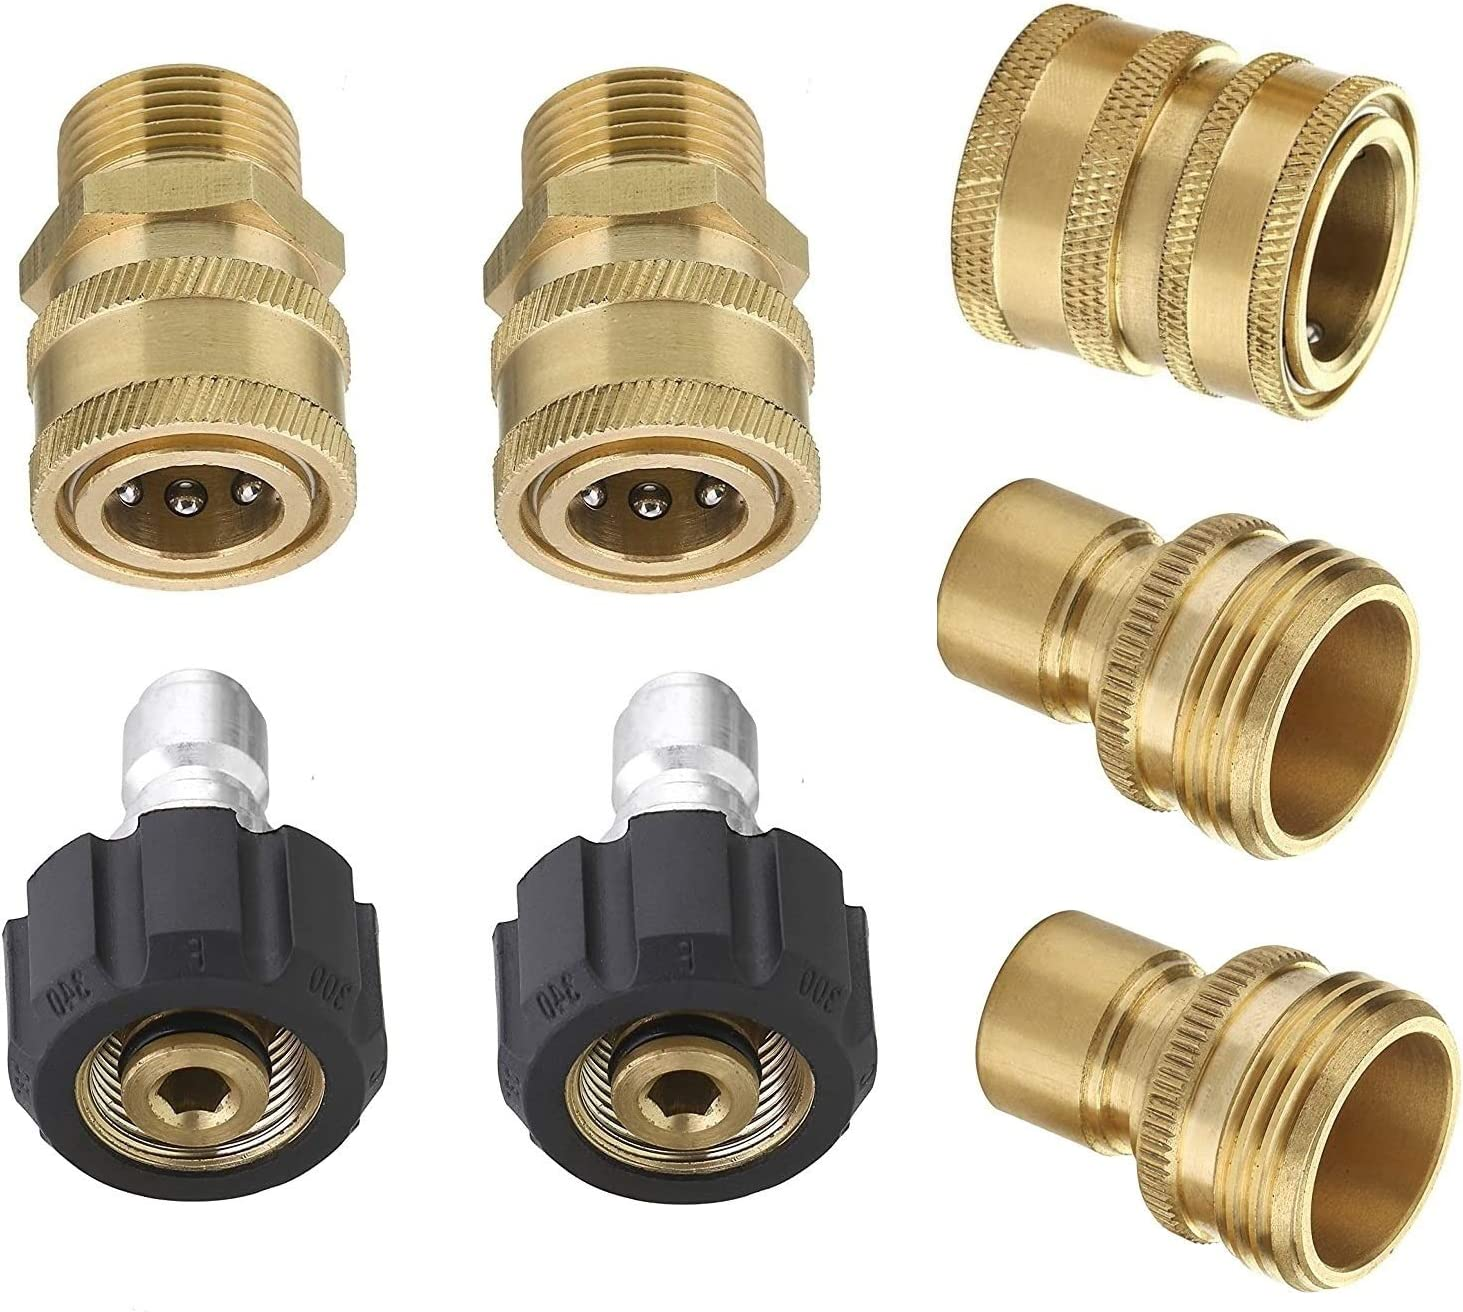 "Vortxx Pressure Washer Brass Quick Connect Adapter Set for Sun Joe SPX Series, M22-15mm to 3/8"" Quick Release, 5000 PSI, Universal Garden Hose"